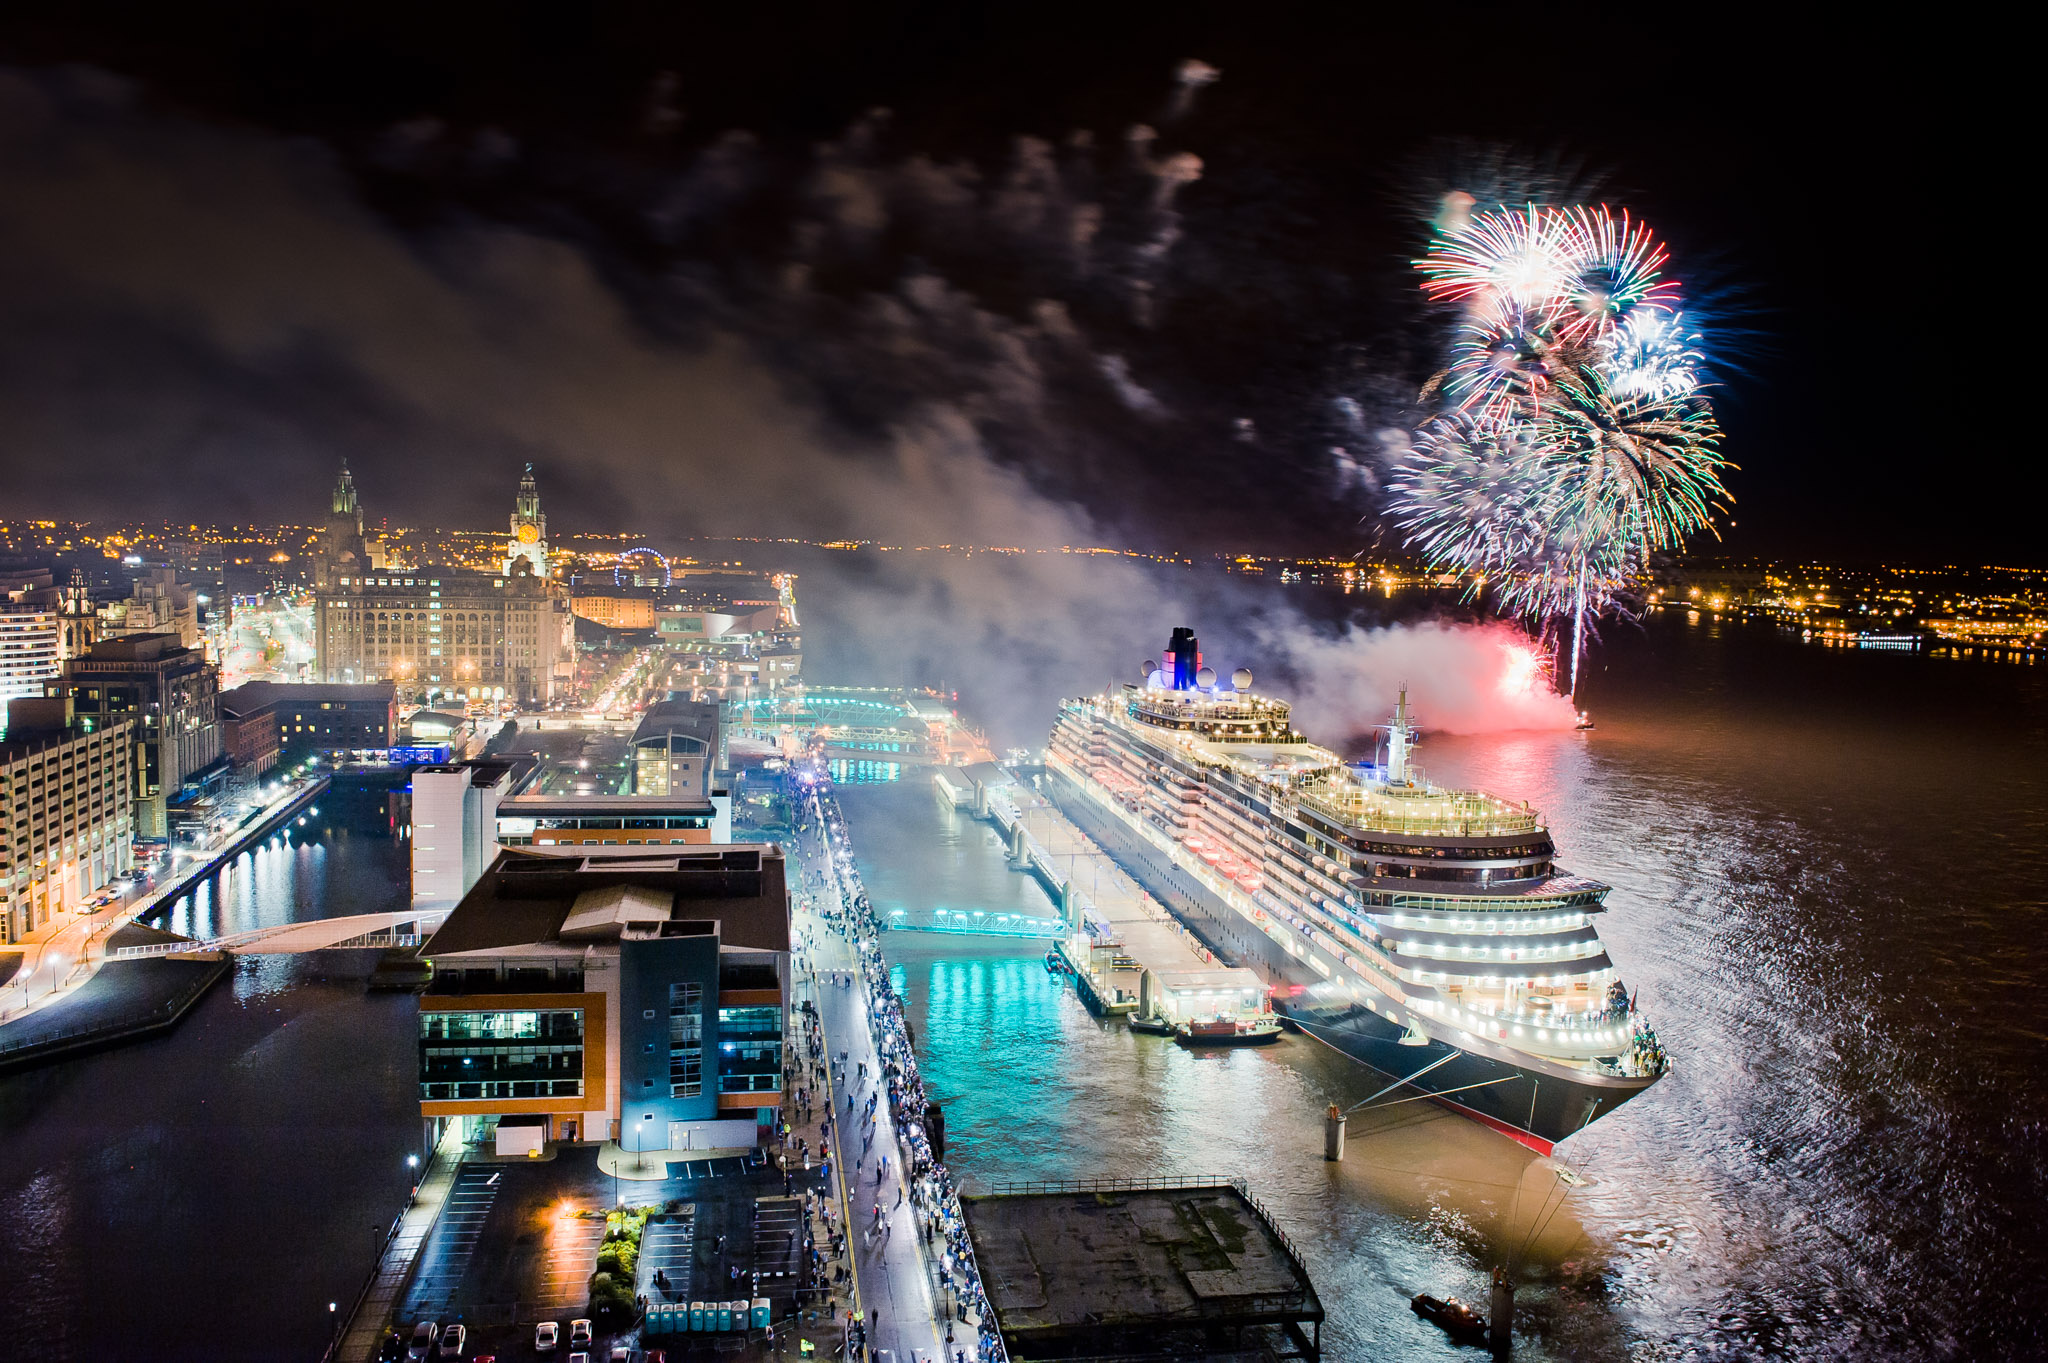 8 years of Cunard liners in Liverpool